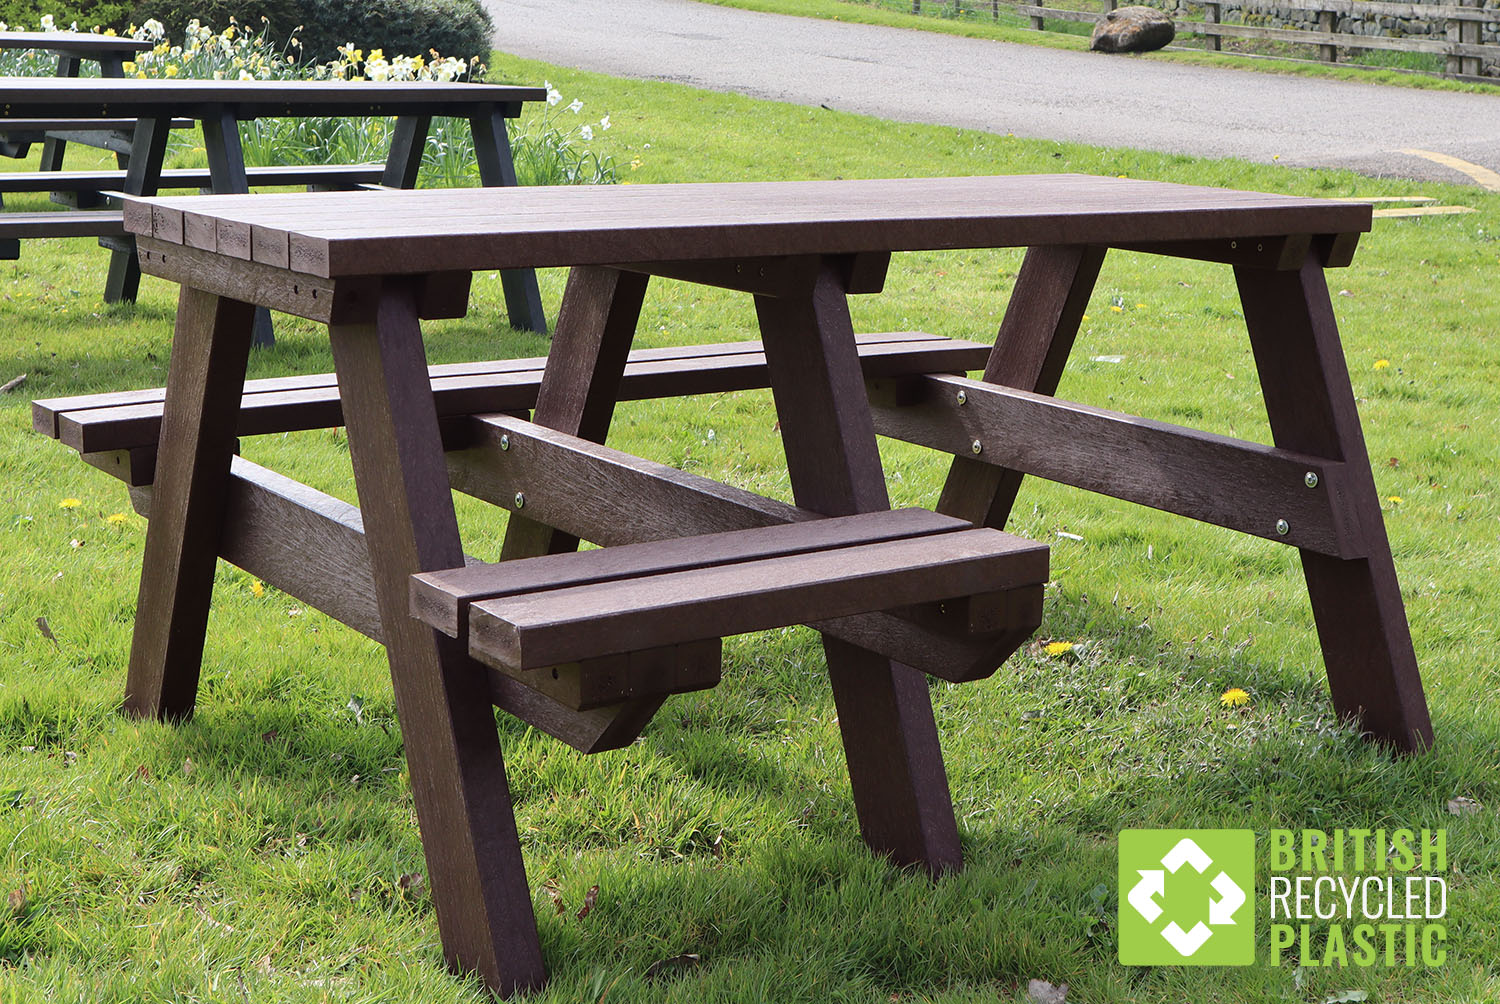 Our wheelchair accessible Bradshaw picnic tables come with a 25 year guarantee